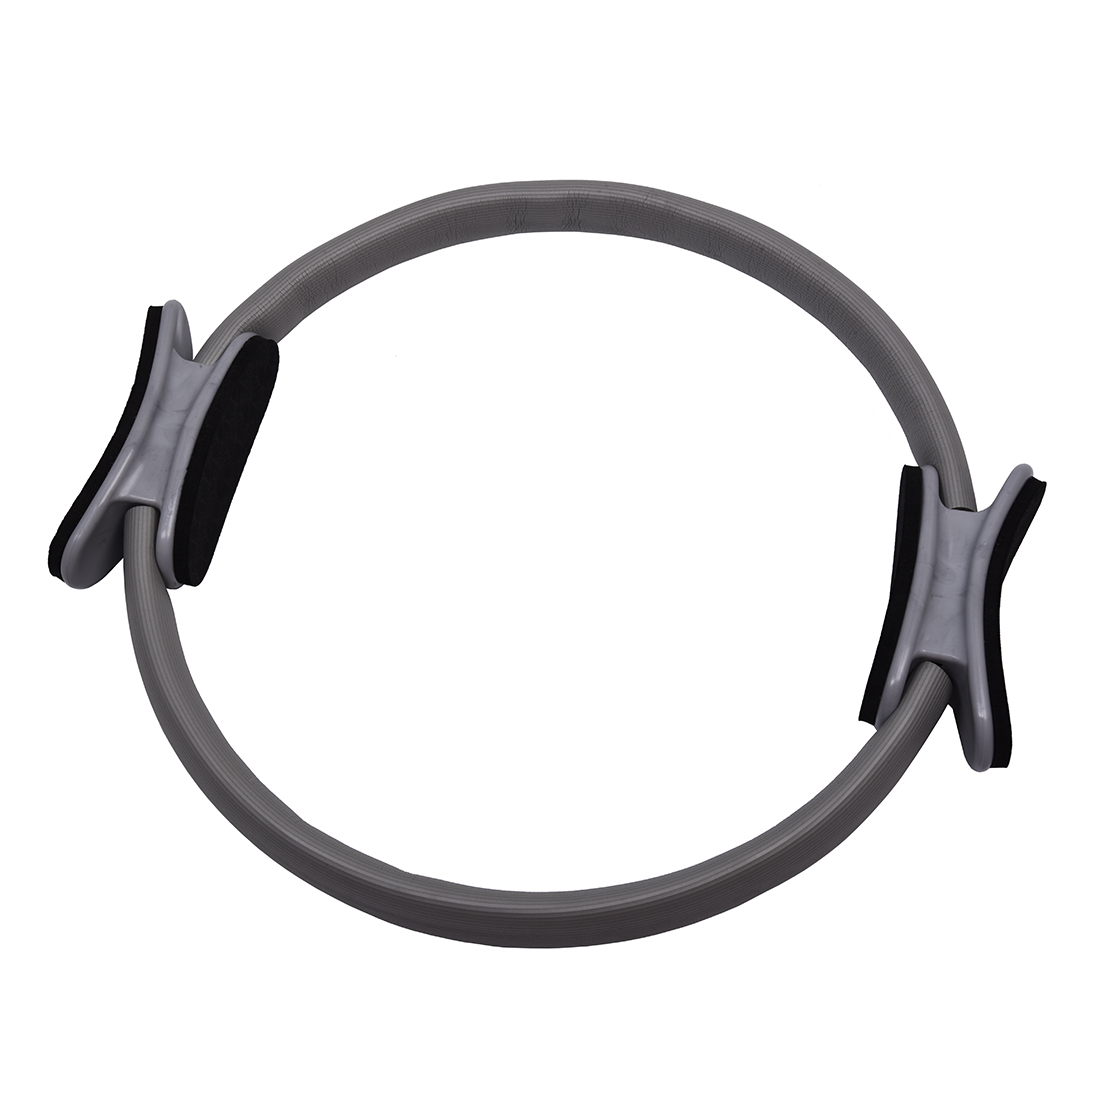 Pilates Ring Circle Resistance Exercise Workout Fitness GYM Yoga Ring Dual Band gray